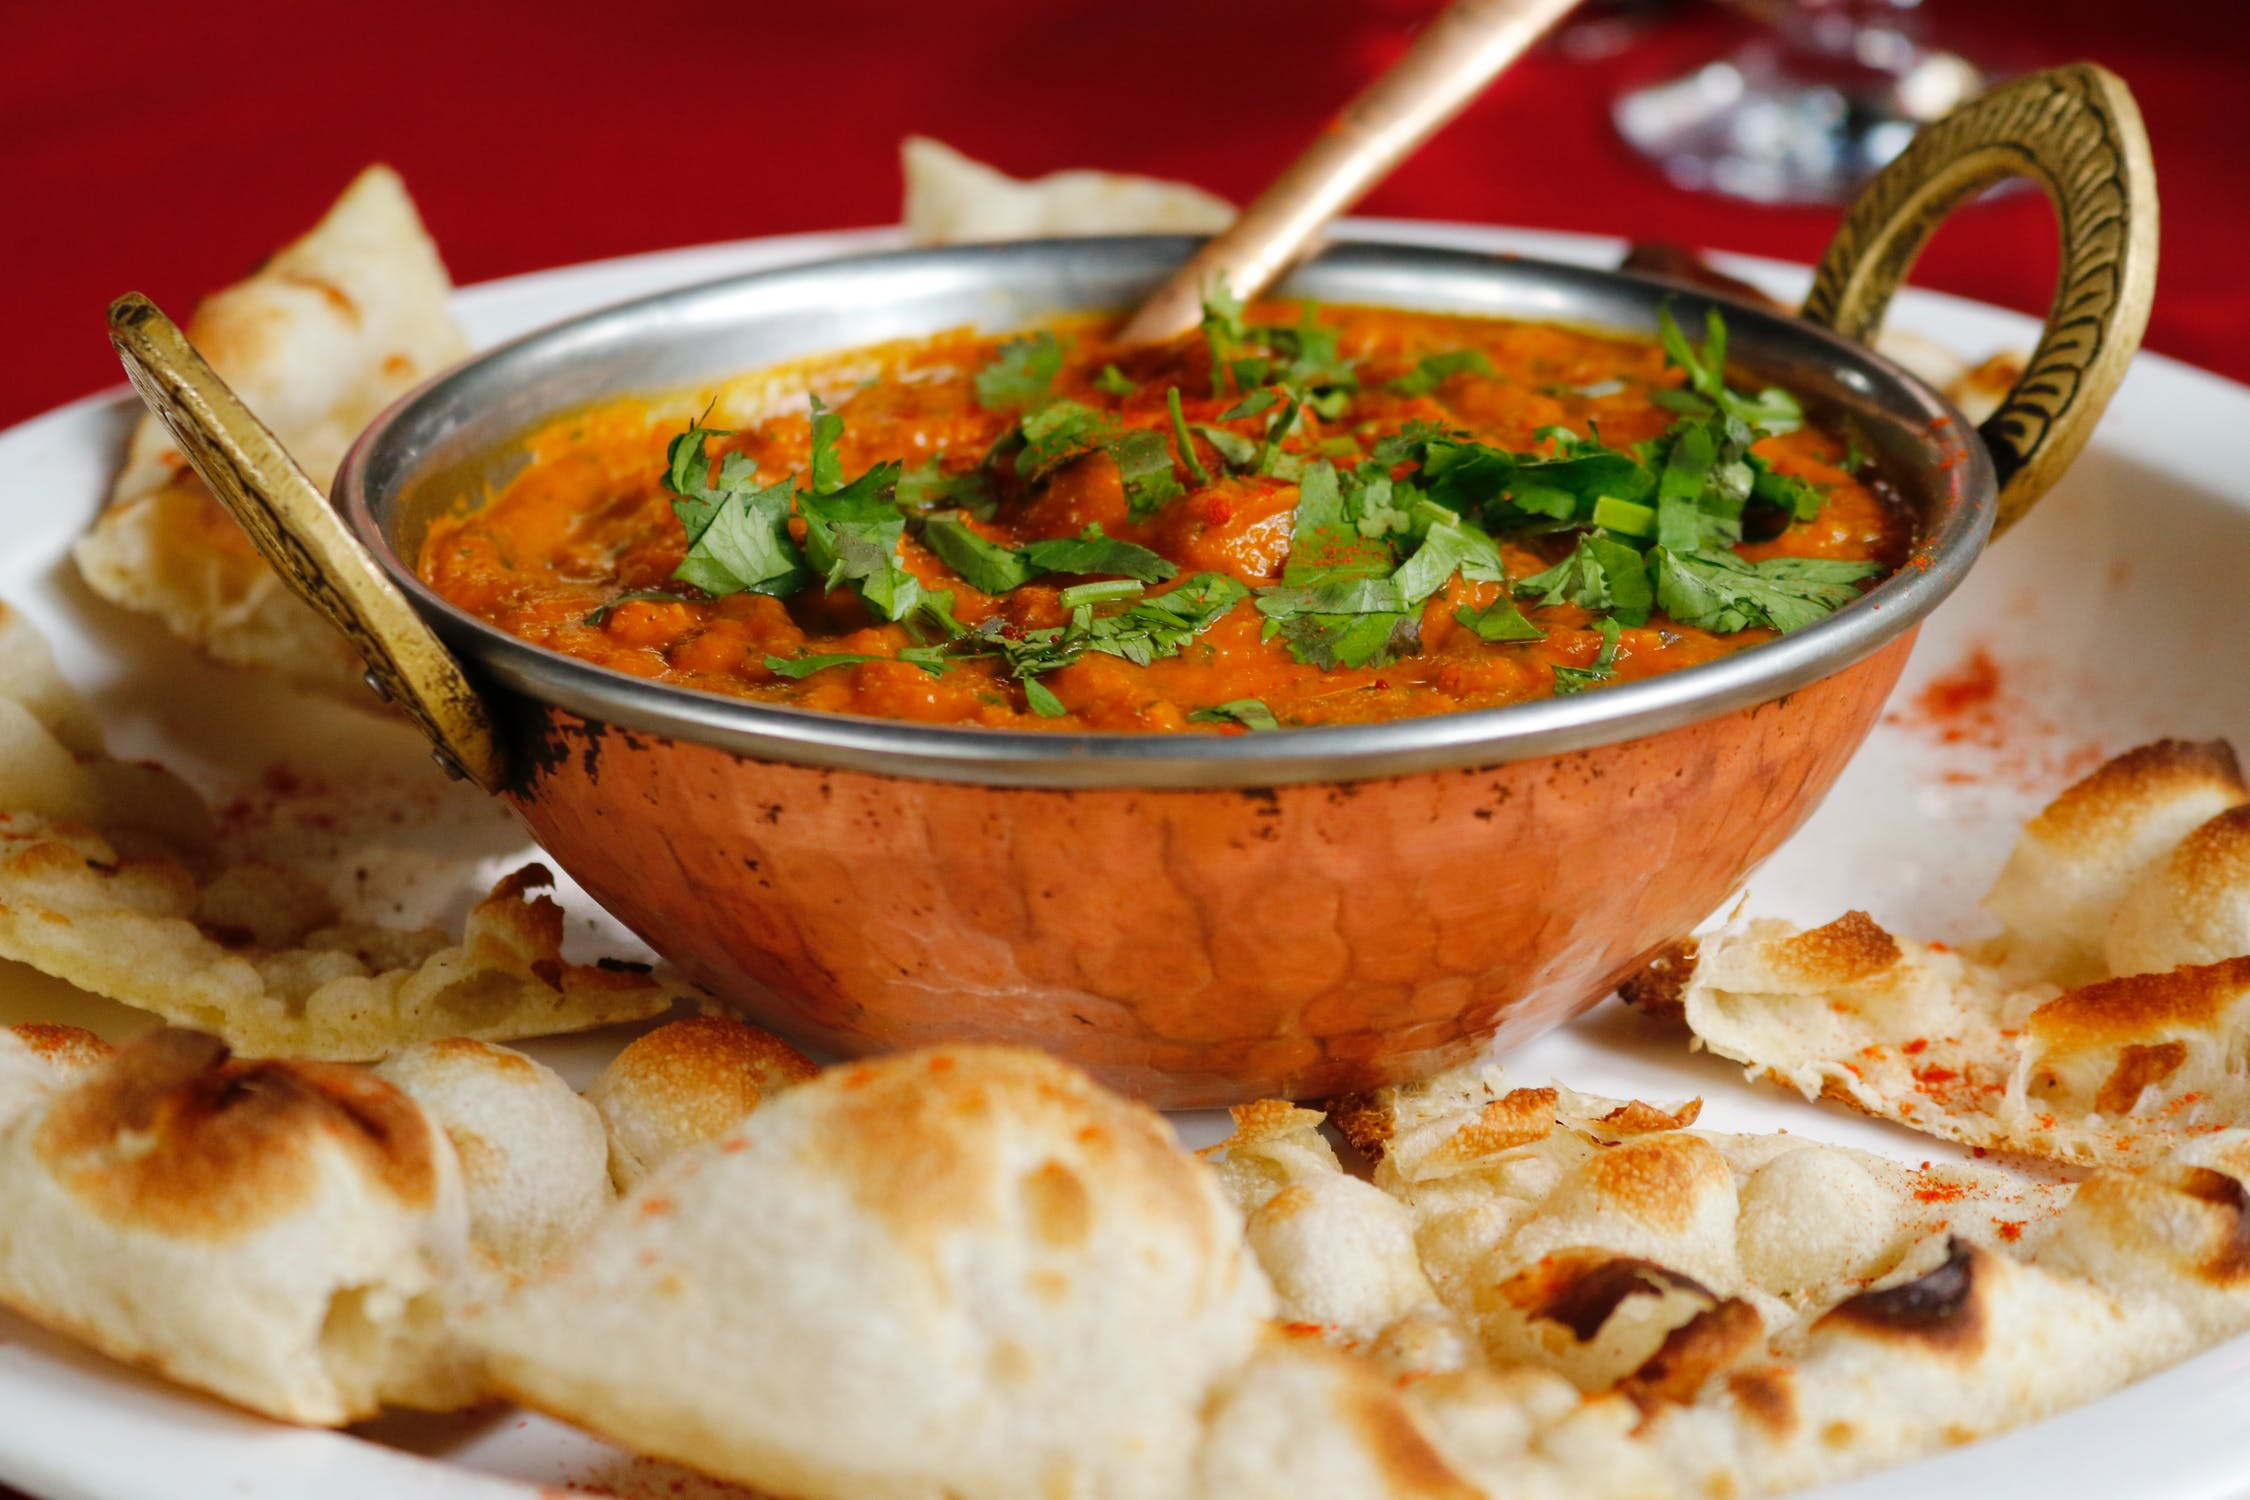 Indian Food Photo by Marvin Ozz from Pexels